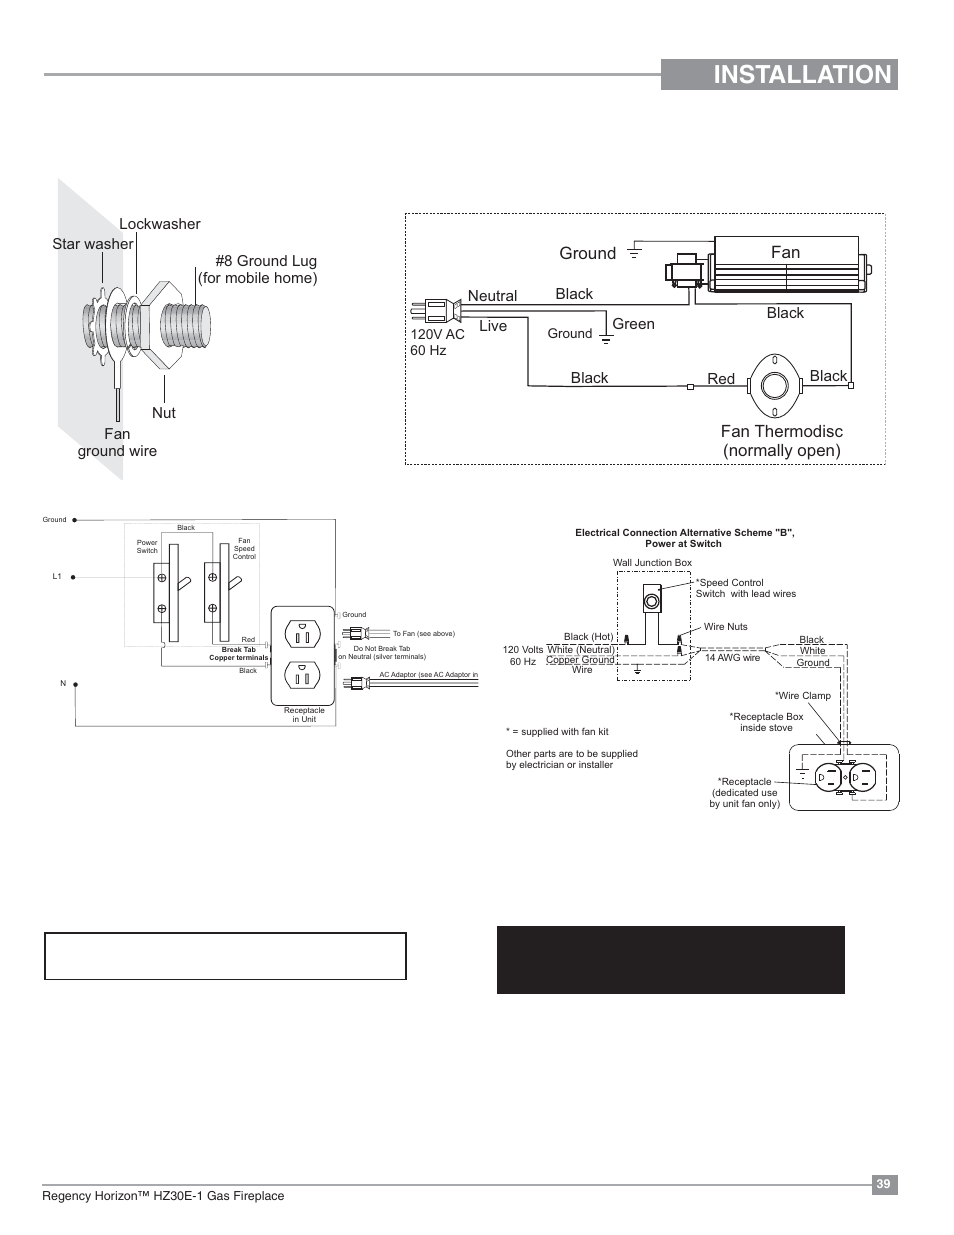 Installation, Optional fan wiring diagram, Without proflame gtmf system |  Regency Horizon HZ30E Small Gas Fireplace User Manual | Page 39 / 64